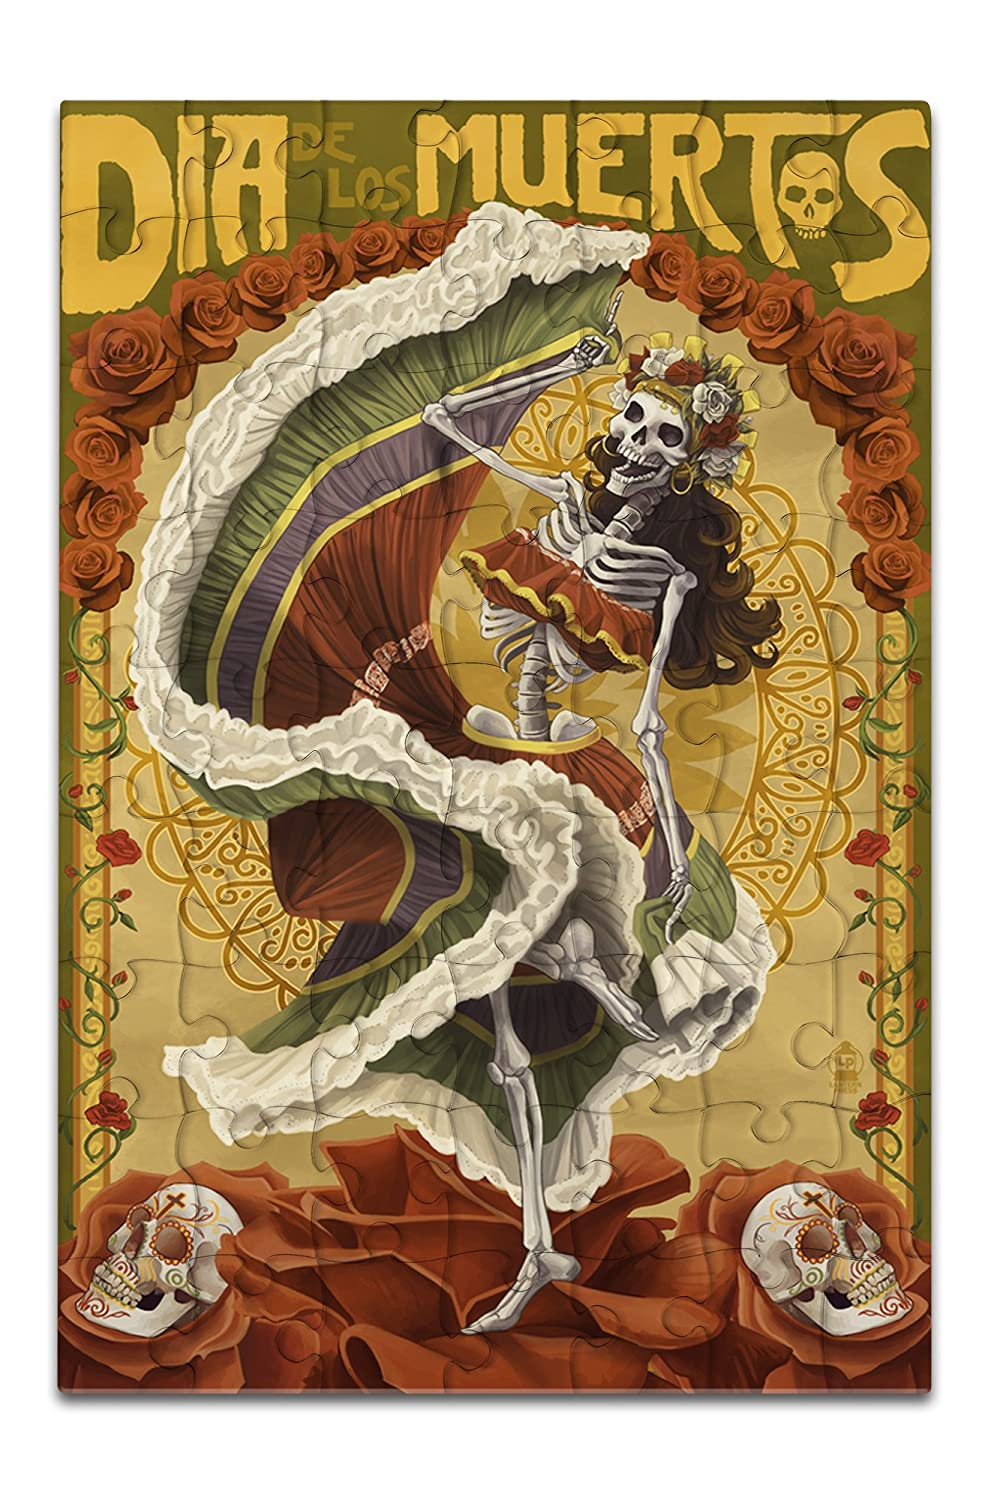 Dia De Los Muertos - Skeleton Dancing - Day of the Dead (8x12 Premium Acrylic Puzzle, 63 Pieces)